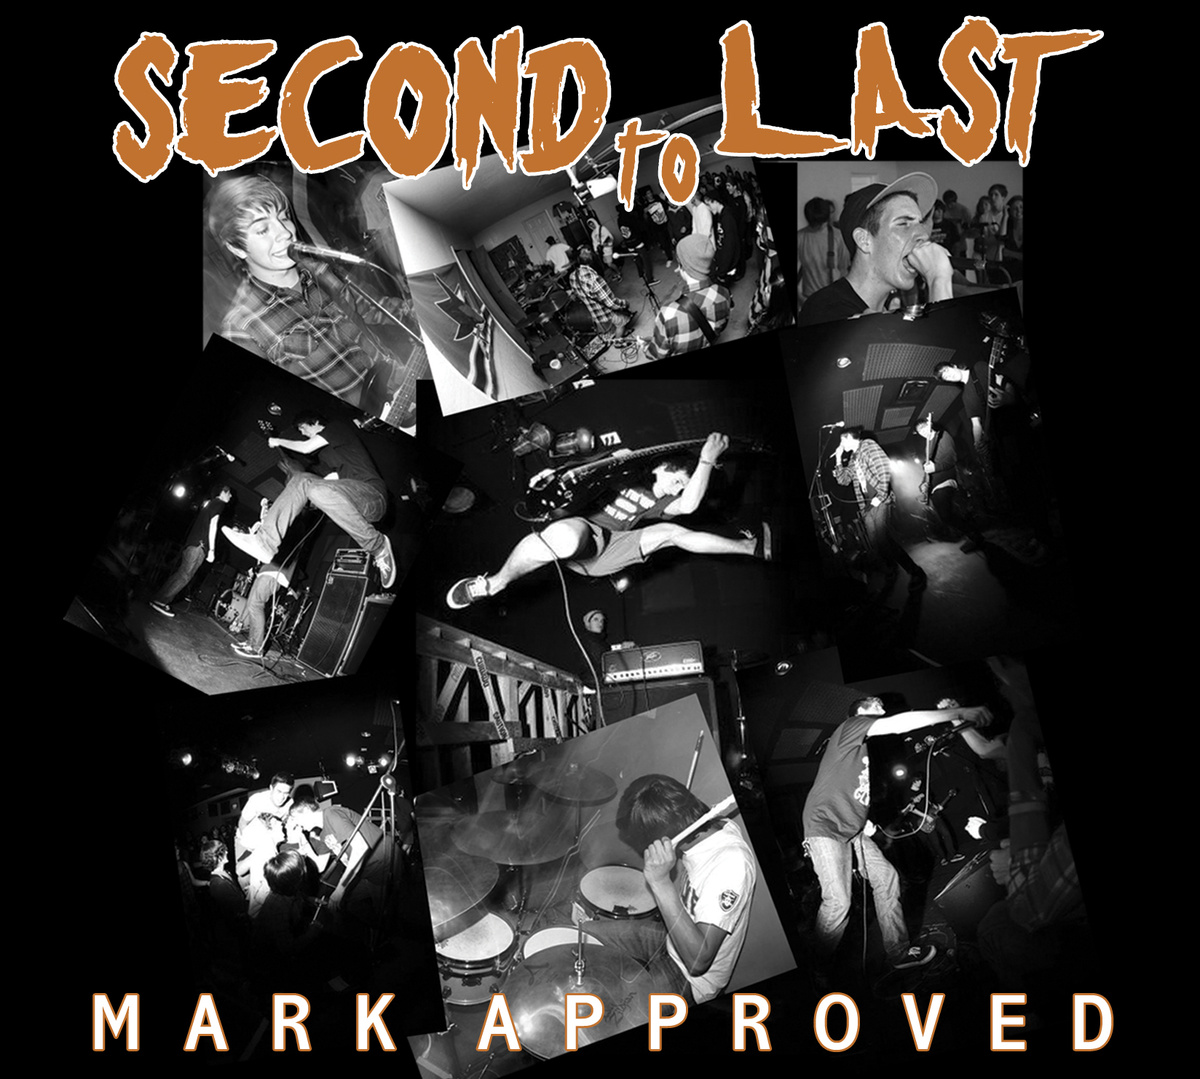 Second To Last - Mark Approved